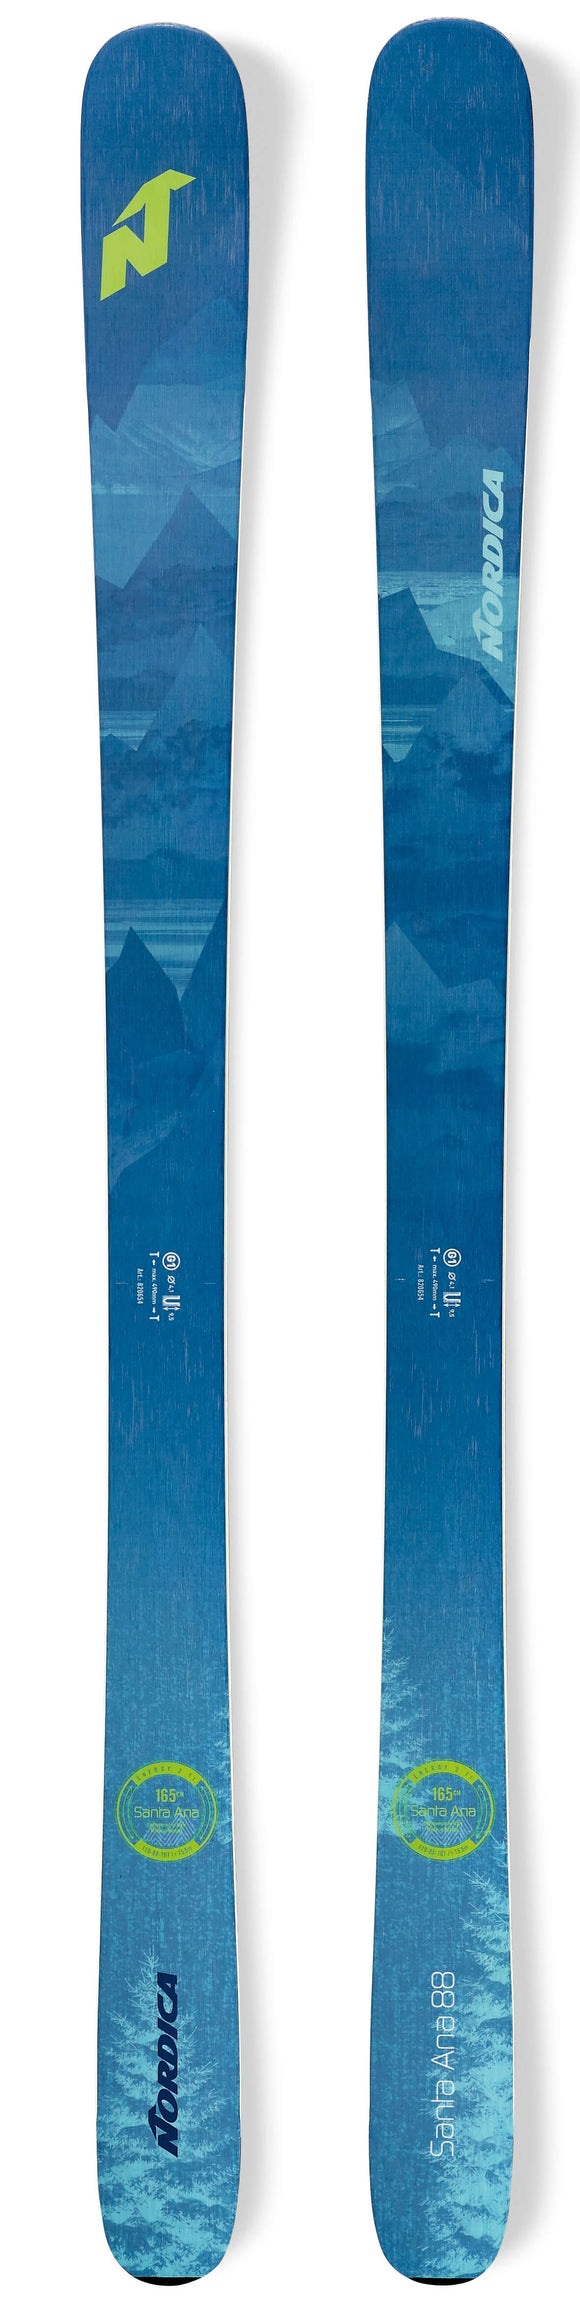 NORDICA 2020 Nordica Santa Ana 88 ladies snow skis - ProSkiGuy